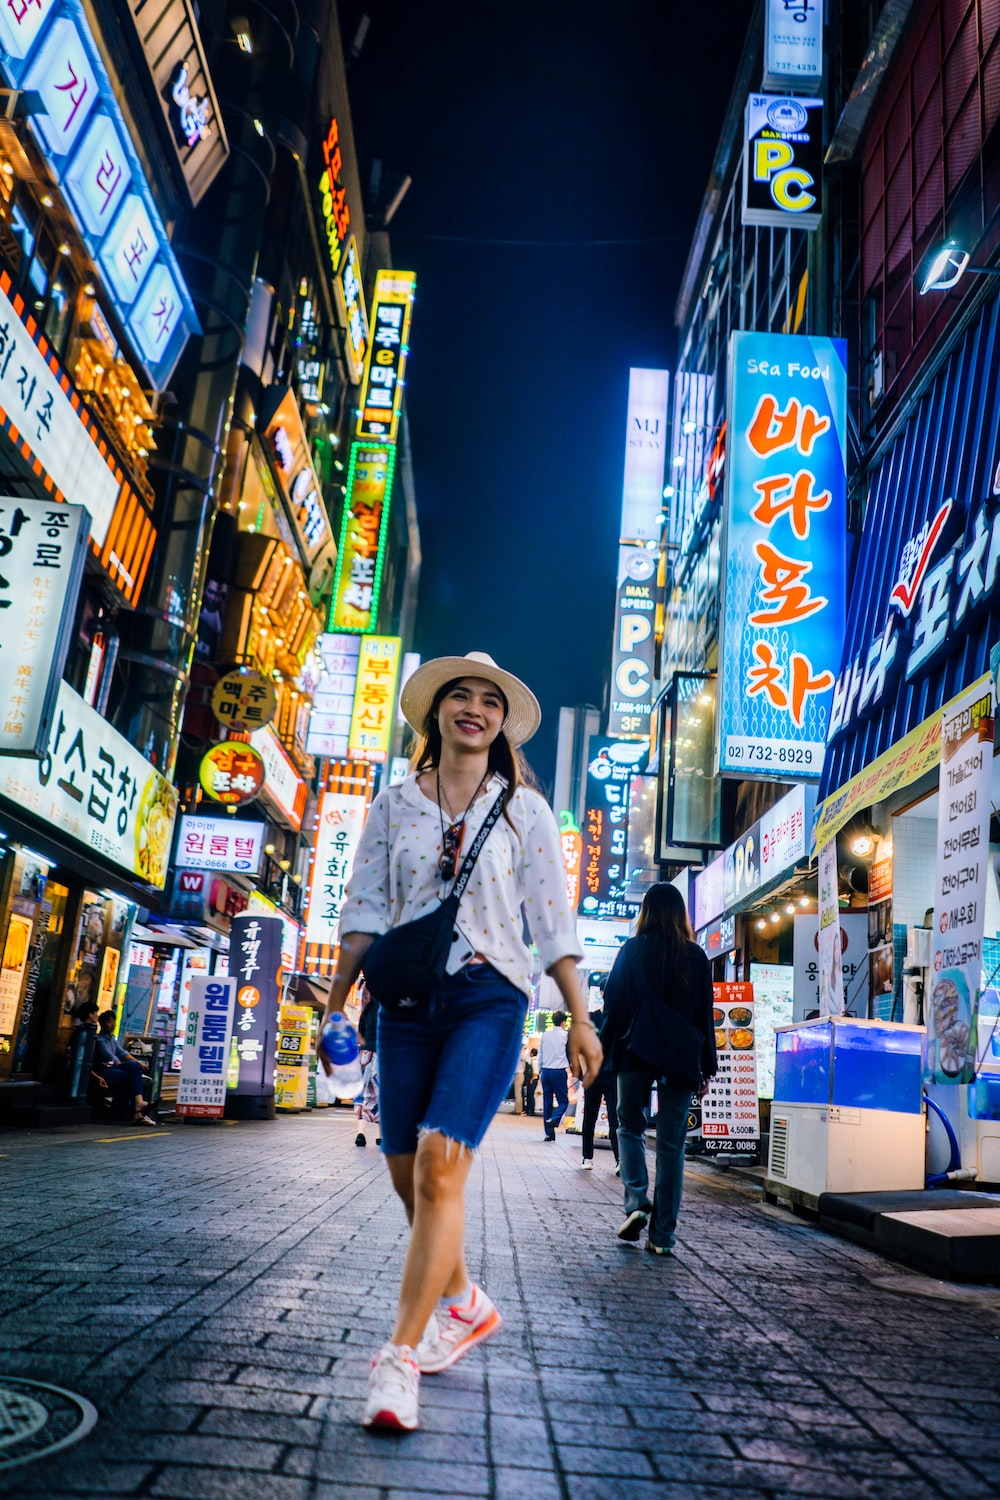 woman walking between buildings with lighted signs at night